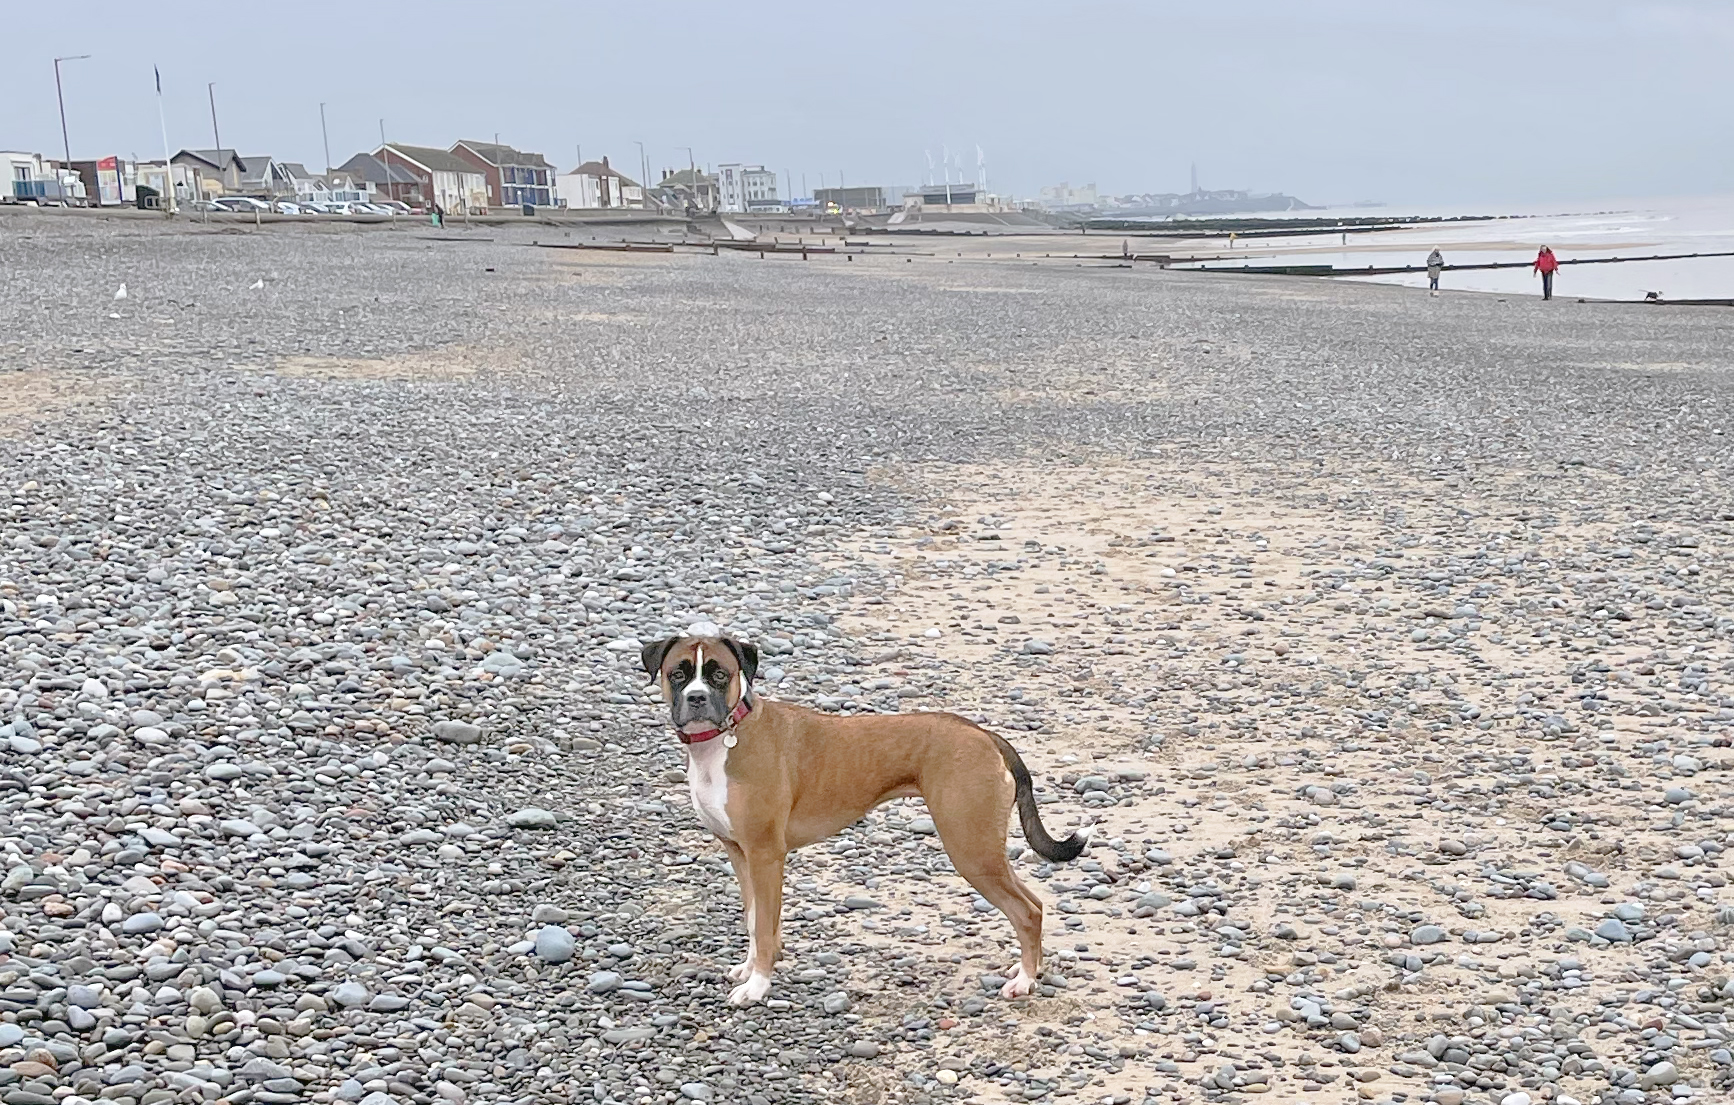 brown dog on the beach, looking a little underweight. How to safely help your dog gain weight